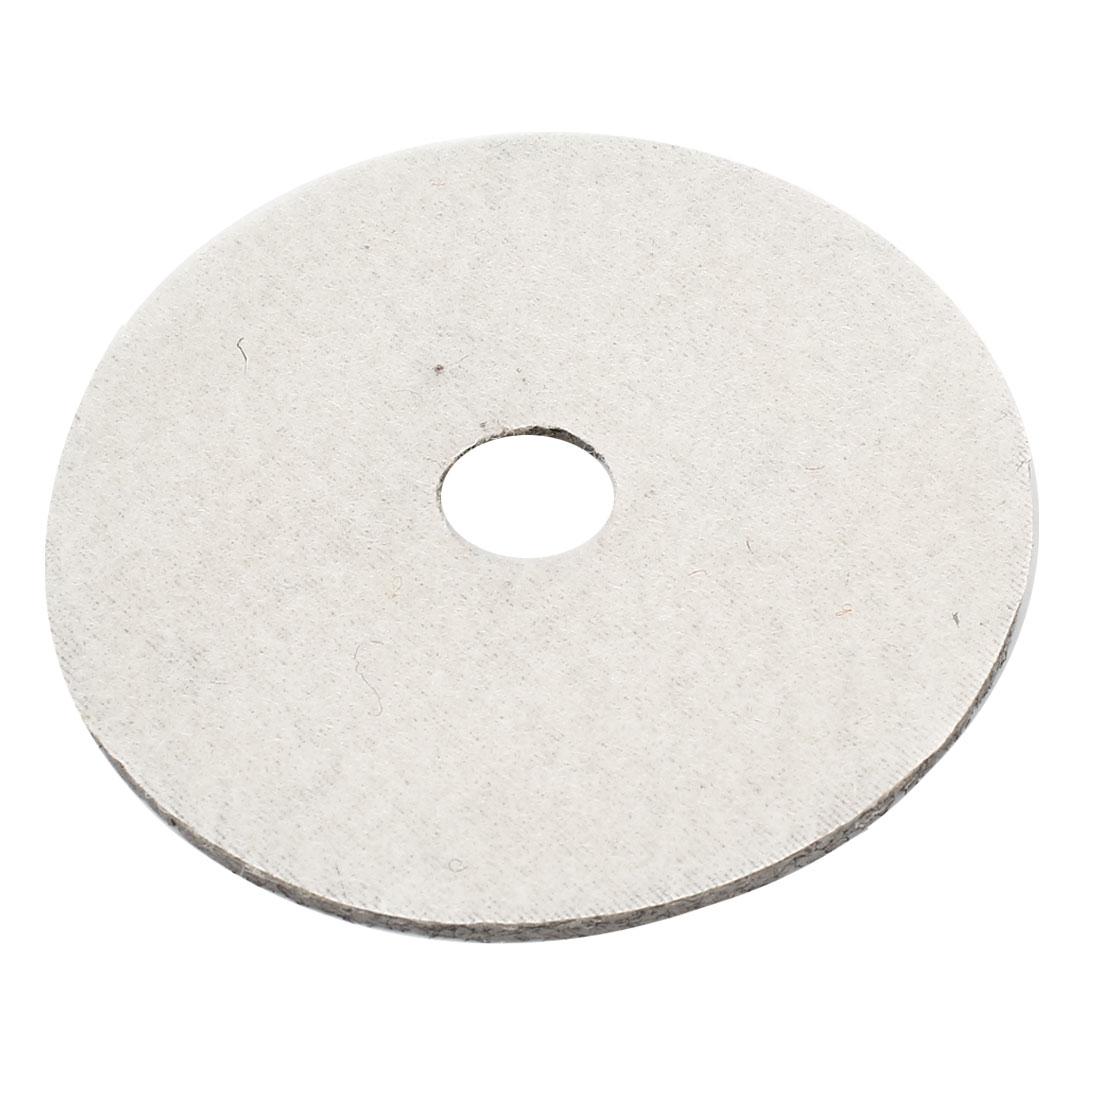 "4"" Dia 50 Grit Gray Diamond Polishing Pad for Concrete Granite"